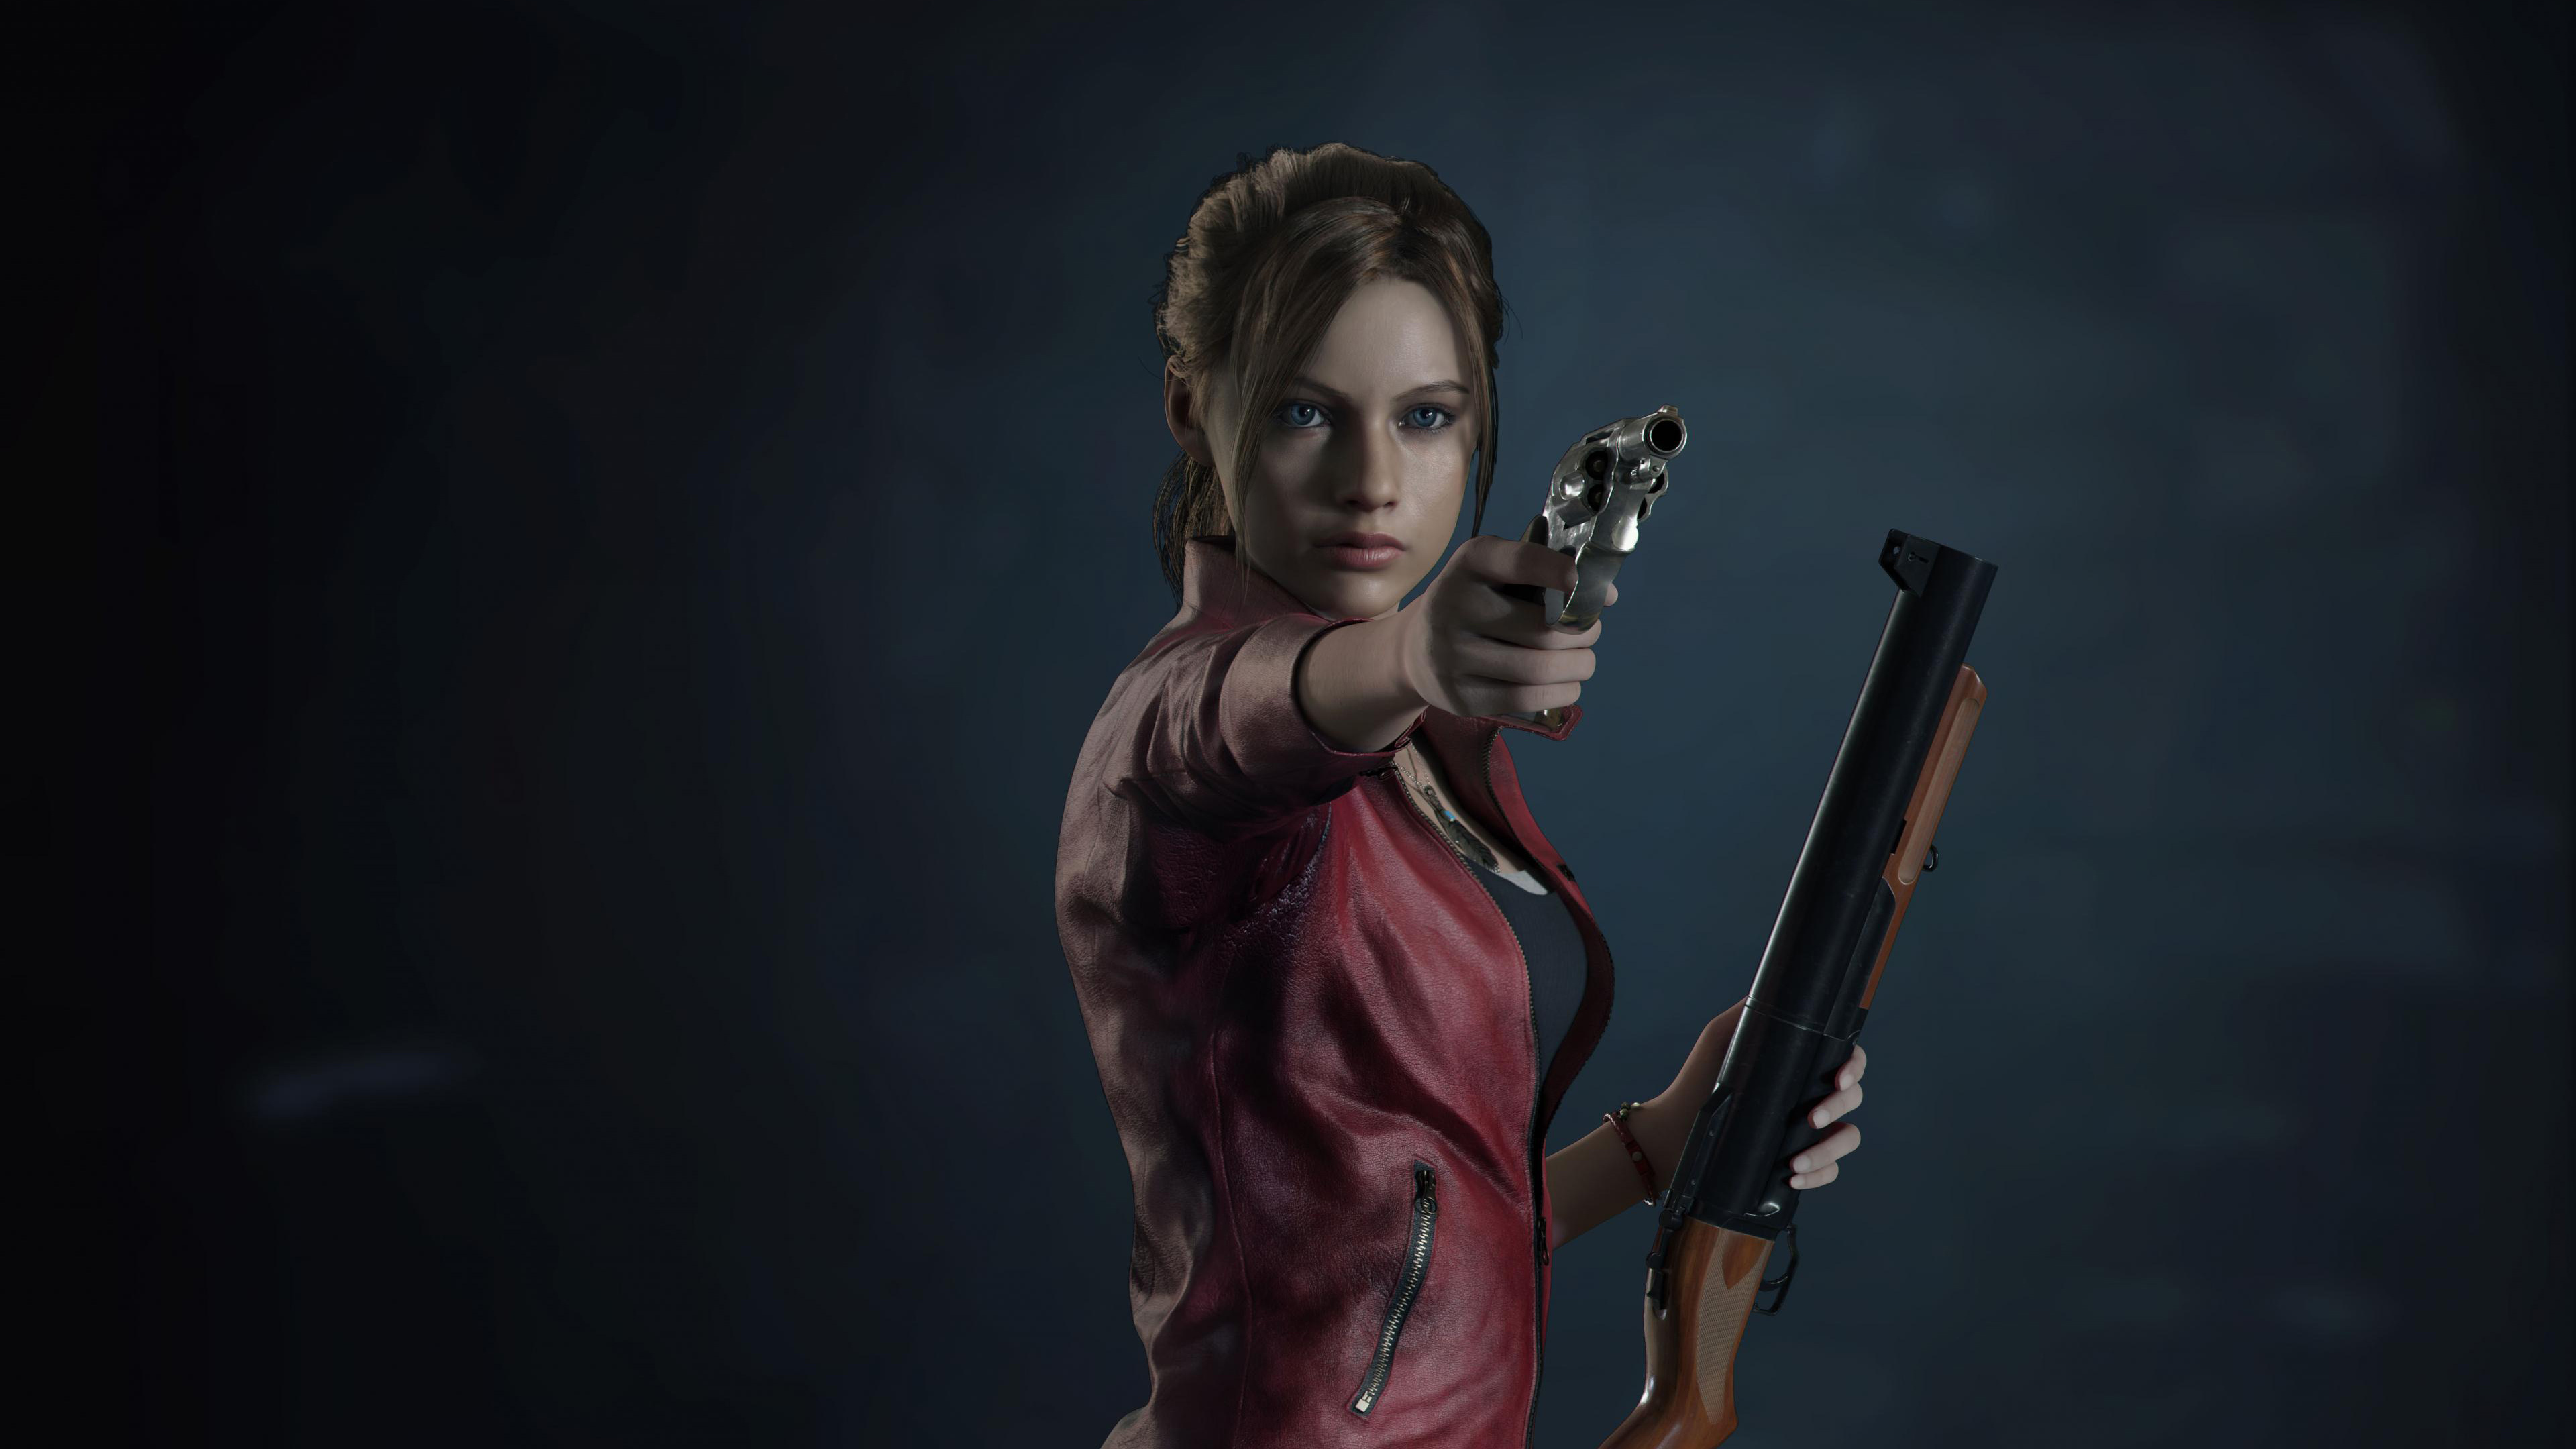 Resident Evil 2 Claire Redfield 4k Hd Games 4k Wallpapers